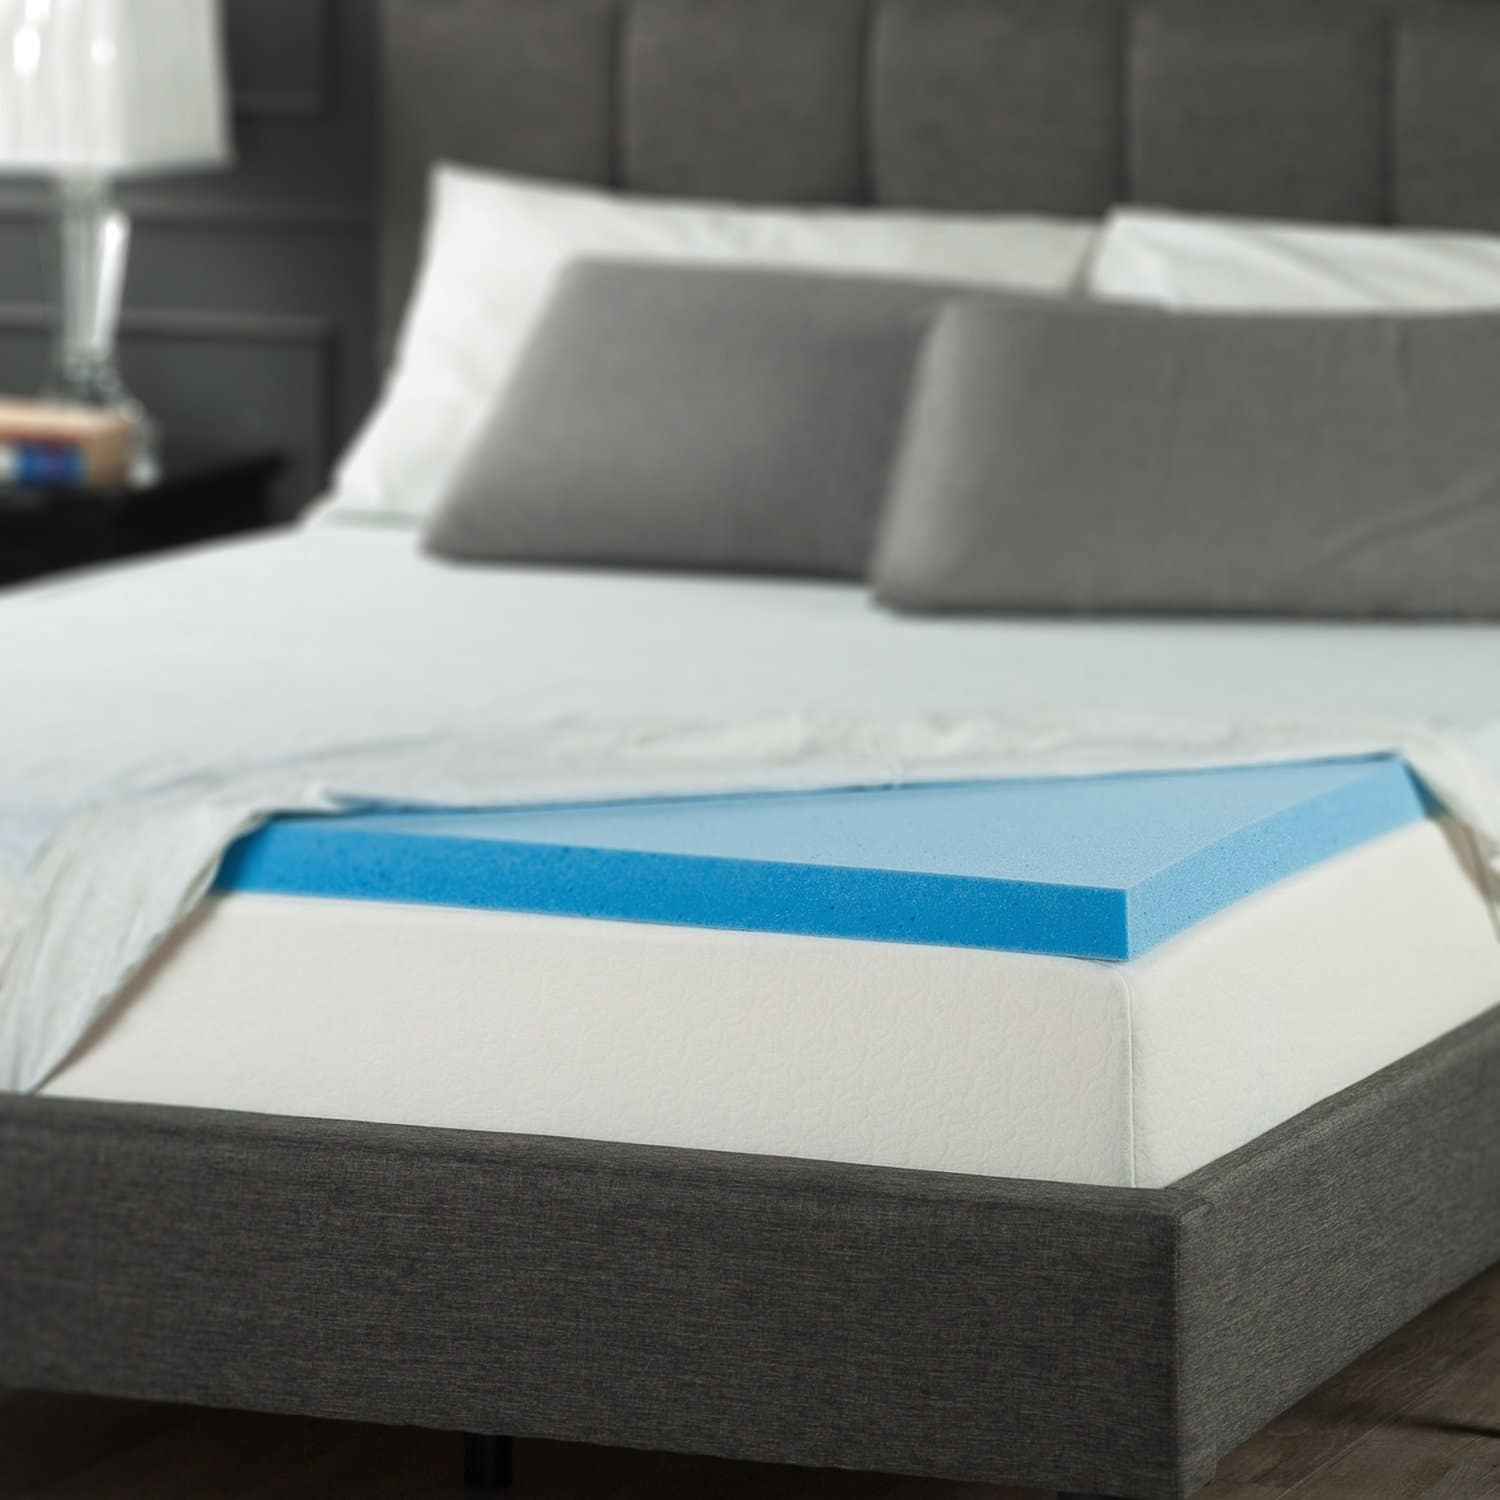 memory foam mattress topper - Zinus Sleep Master Gel Memory Foam 2 Inch Topper